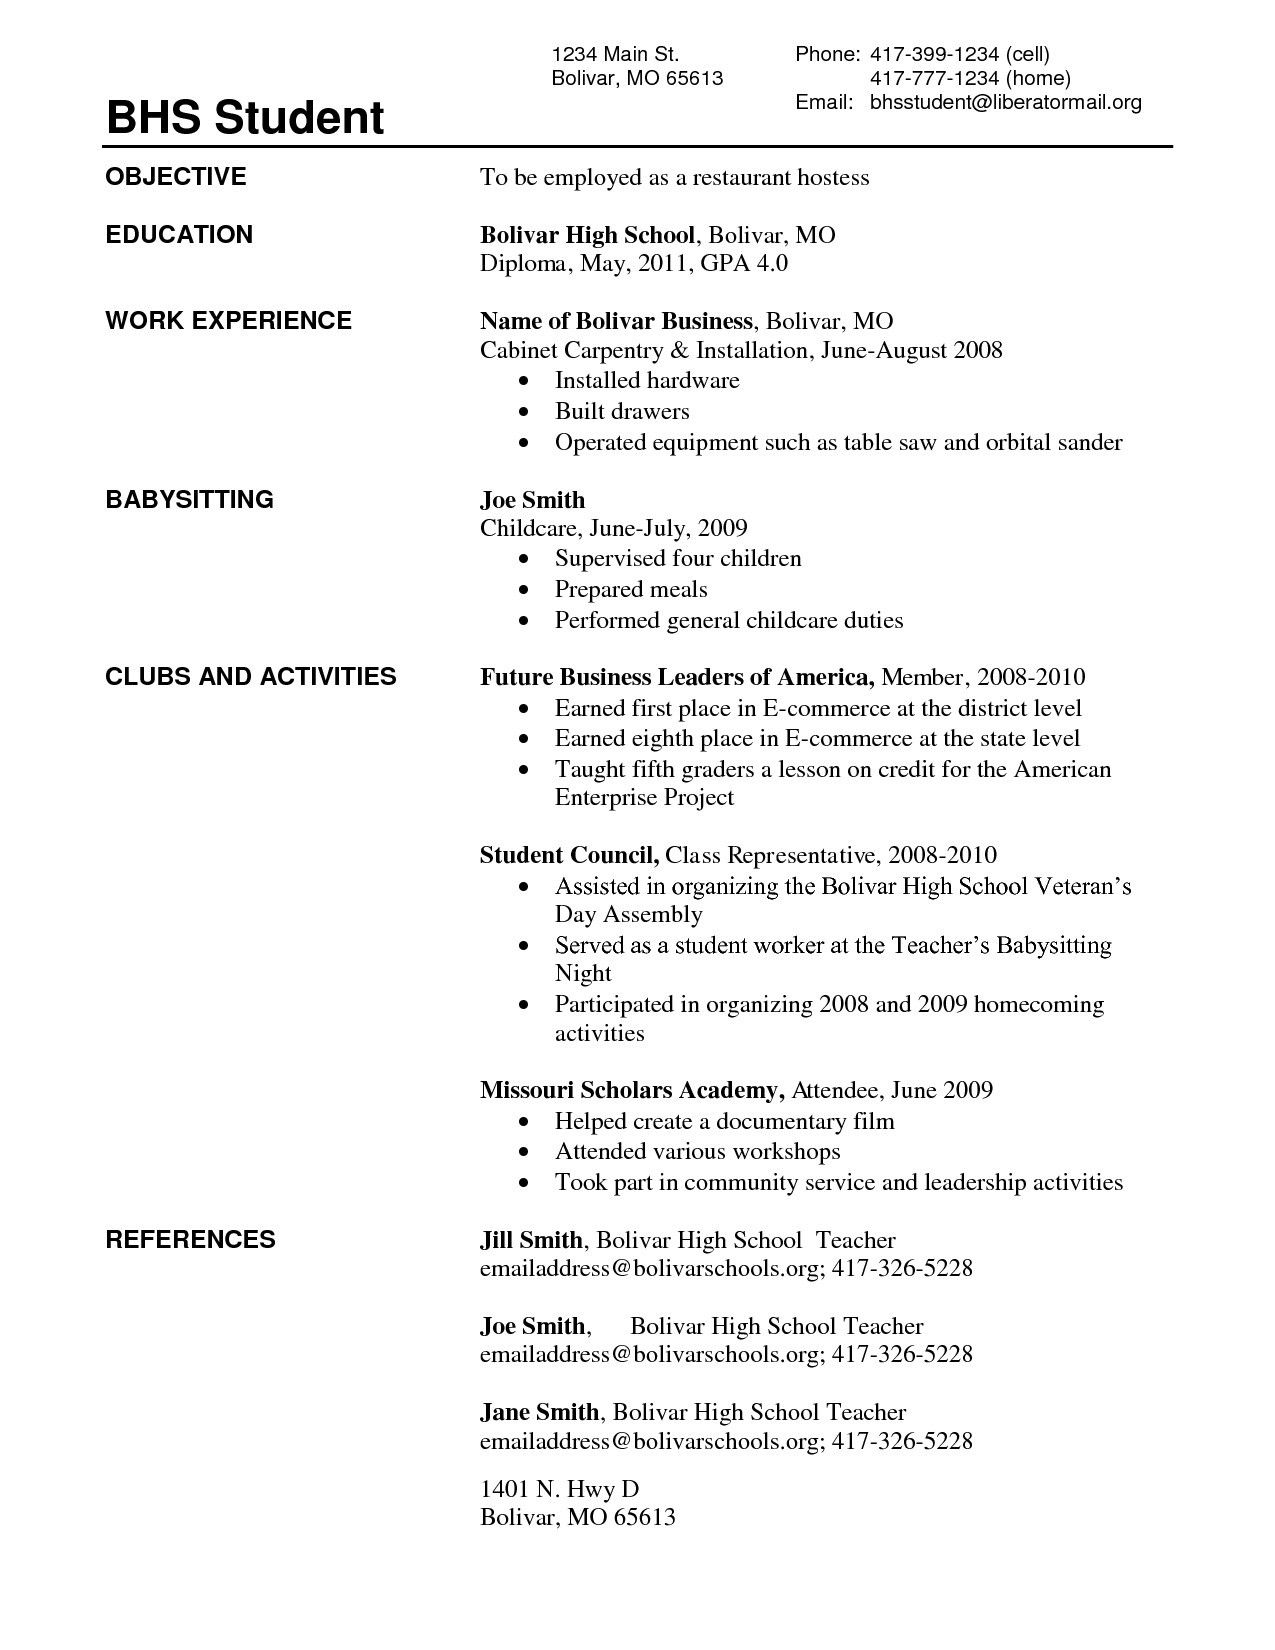 67 Best Of Image Of Resume Examples For College Graduate With No Experience